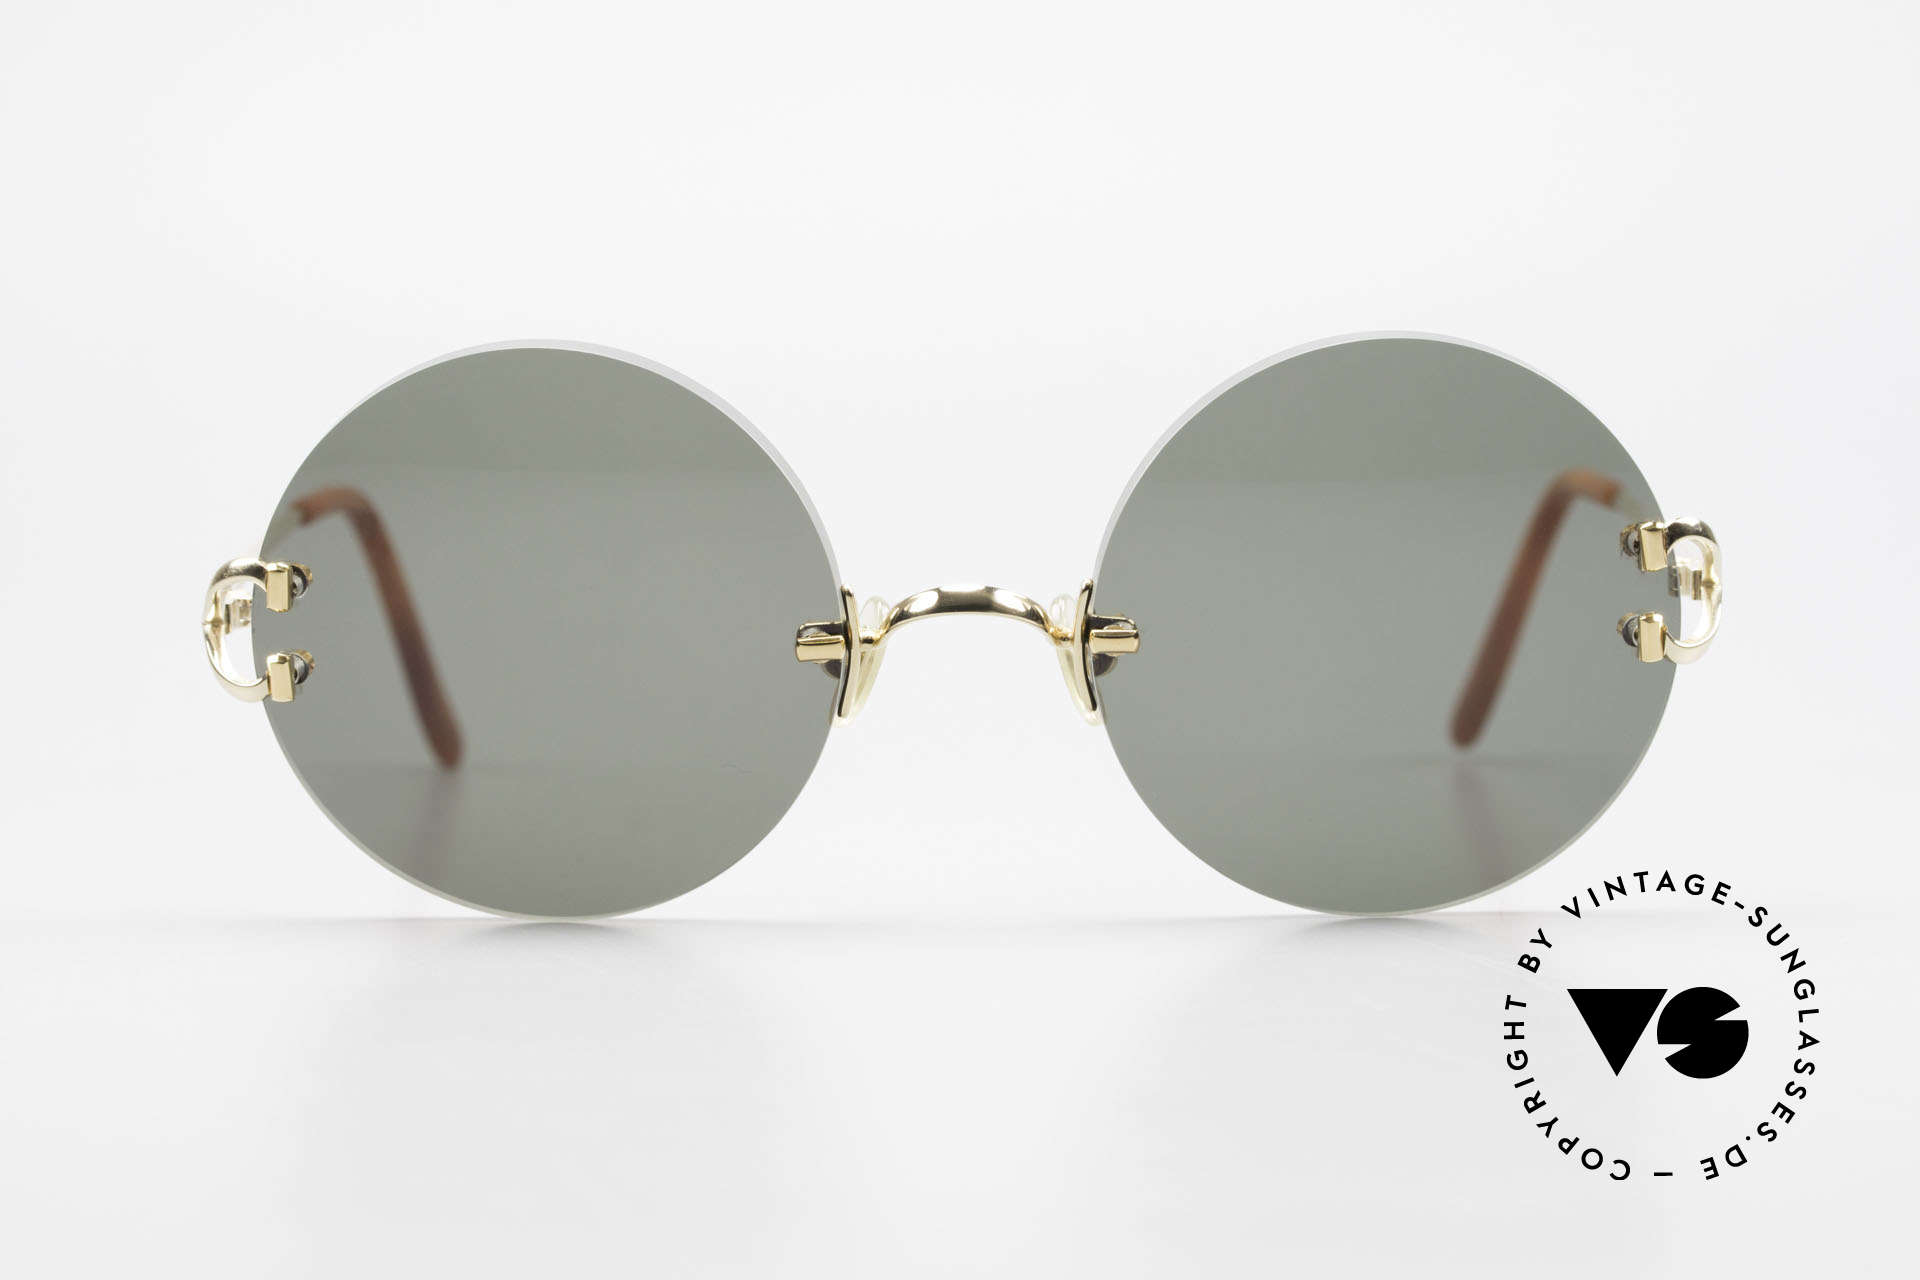 Cartier Madison Round Luxury Sunglasses 90's, precious round designer shades; 22ct GOLD-PLATED, Made for Men and Women